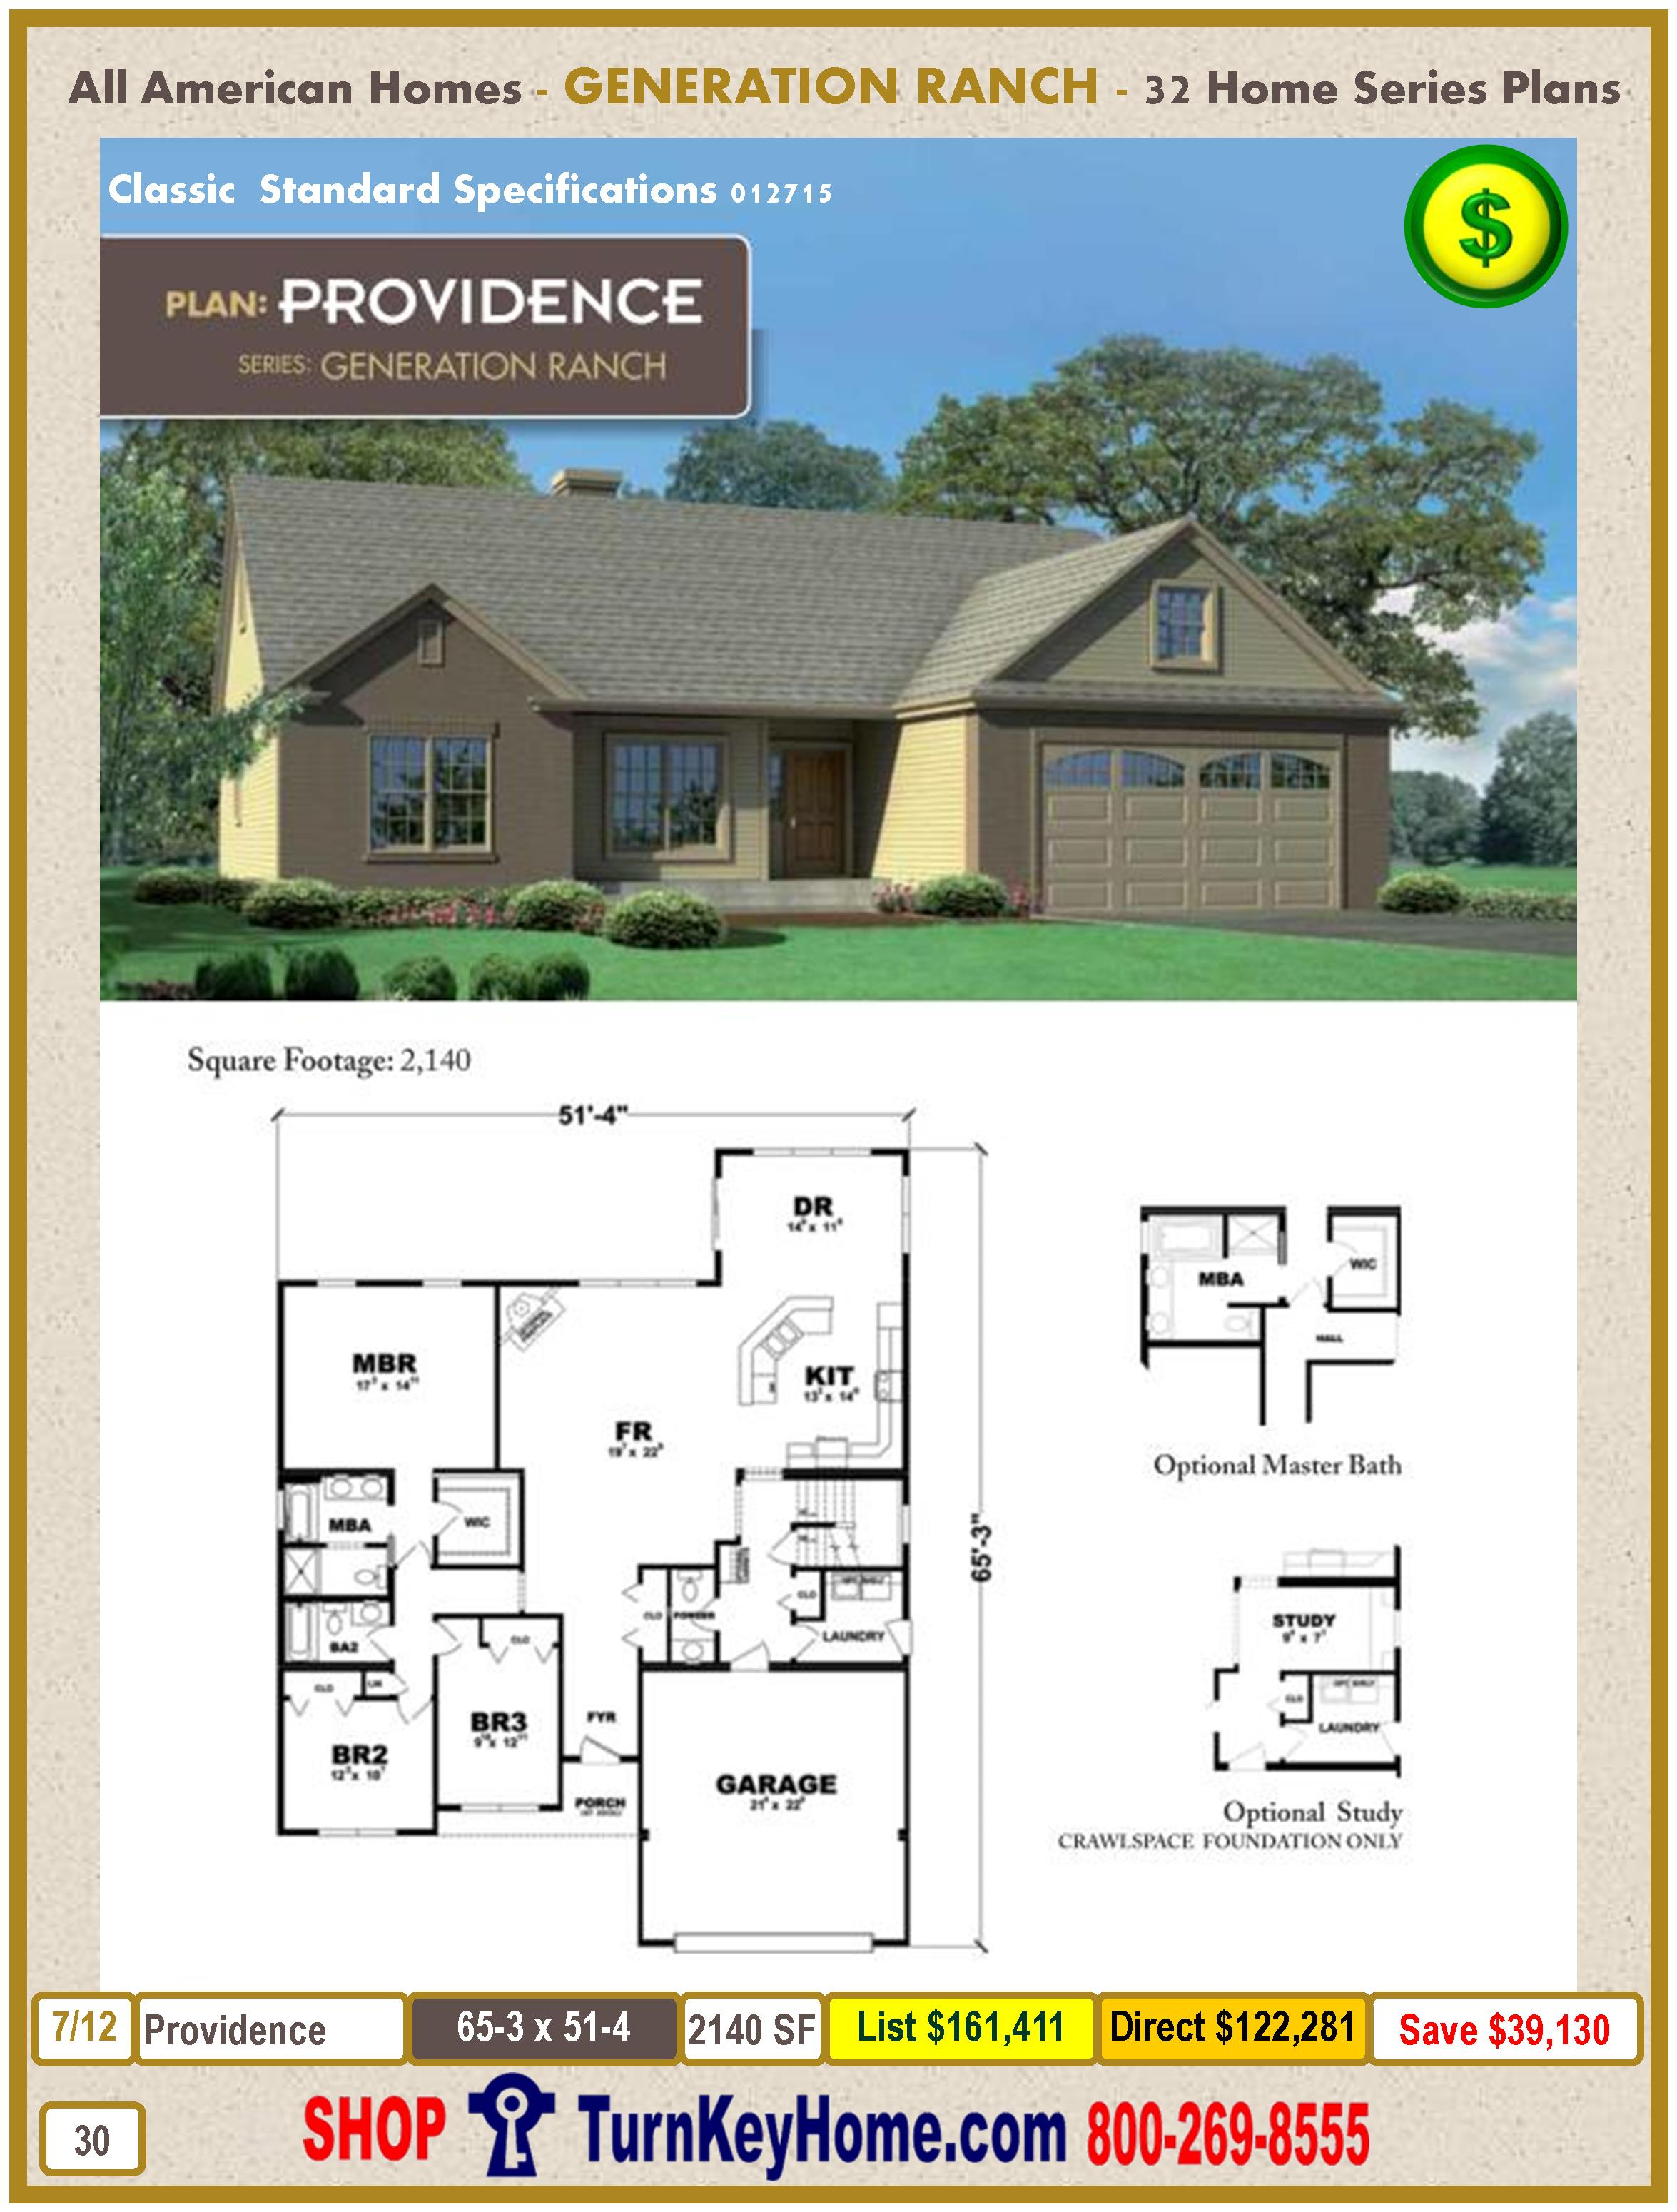 Modular.All.American.Homes.Generation.Ranch.Home.Series.Catalog.Page.30.Providence.Direct.Price.021415